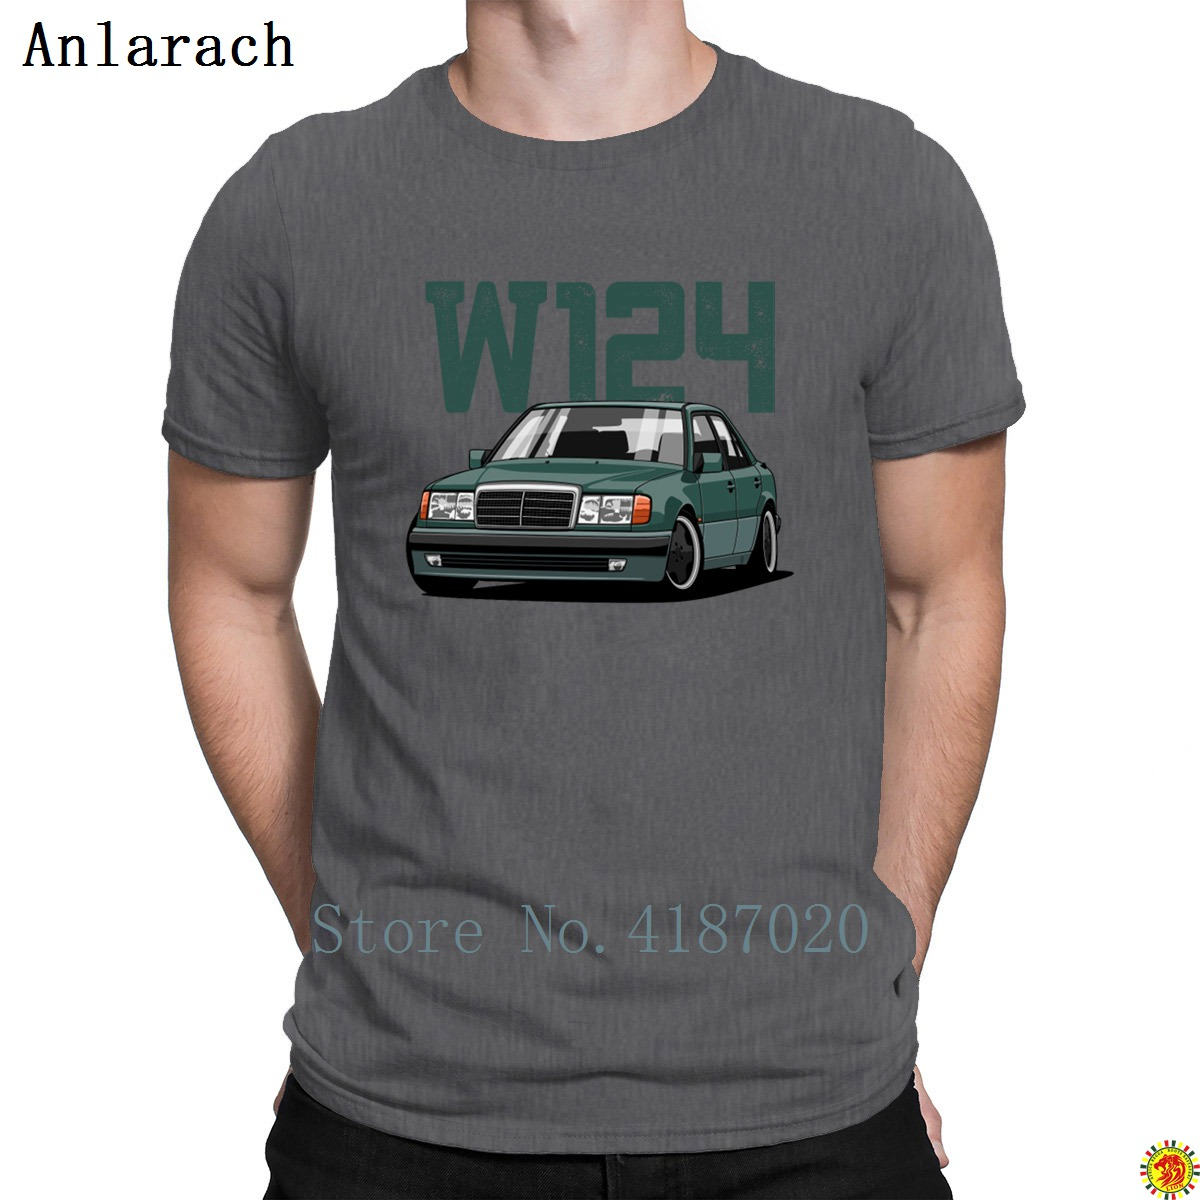 W124 T-Shirt Funny Casual Hip Hop Standard Size S-3xl T Shirt For Men Great Spring Autumn Designing Anlarach Hot Sale